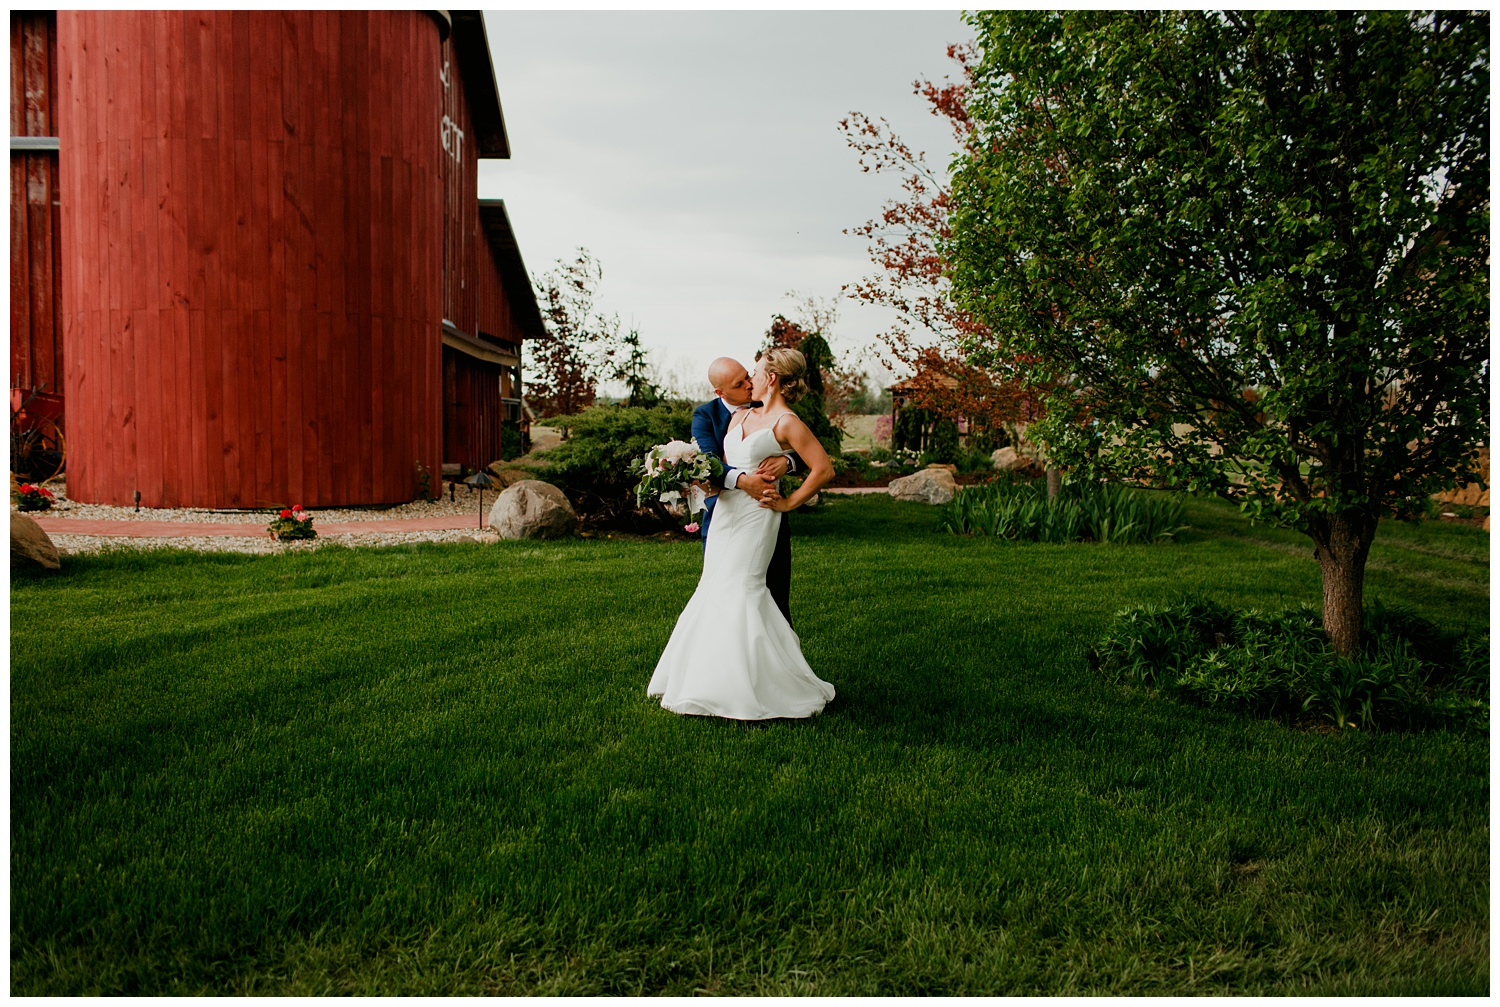 blissfulbarn threeoaks michigan wedding photography journeymandistillery96.jpg